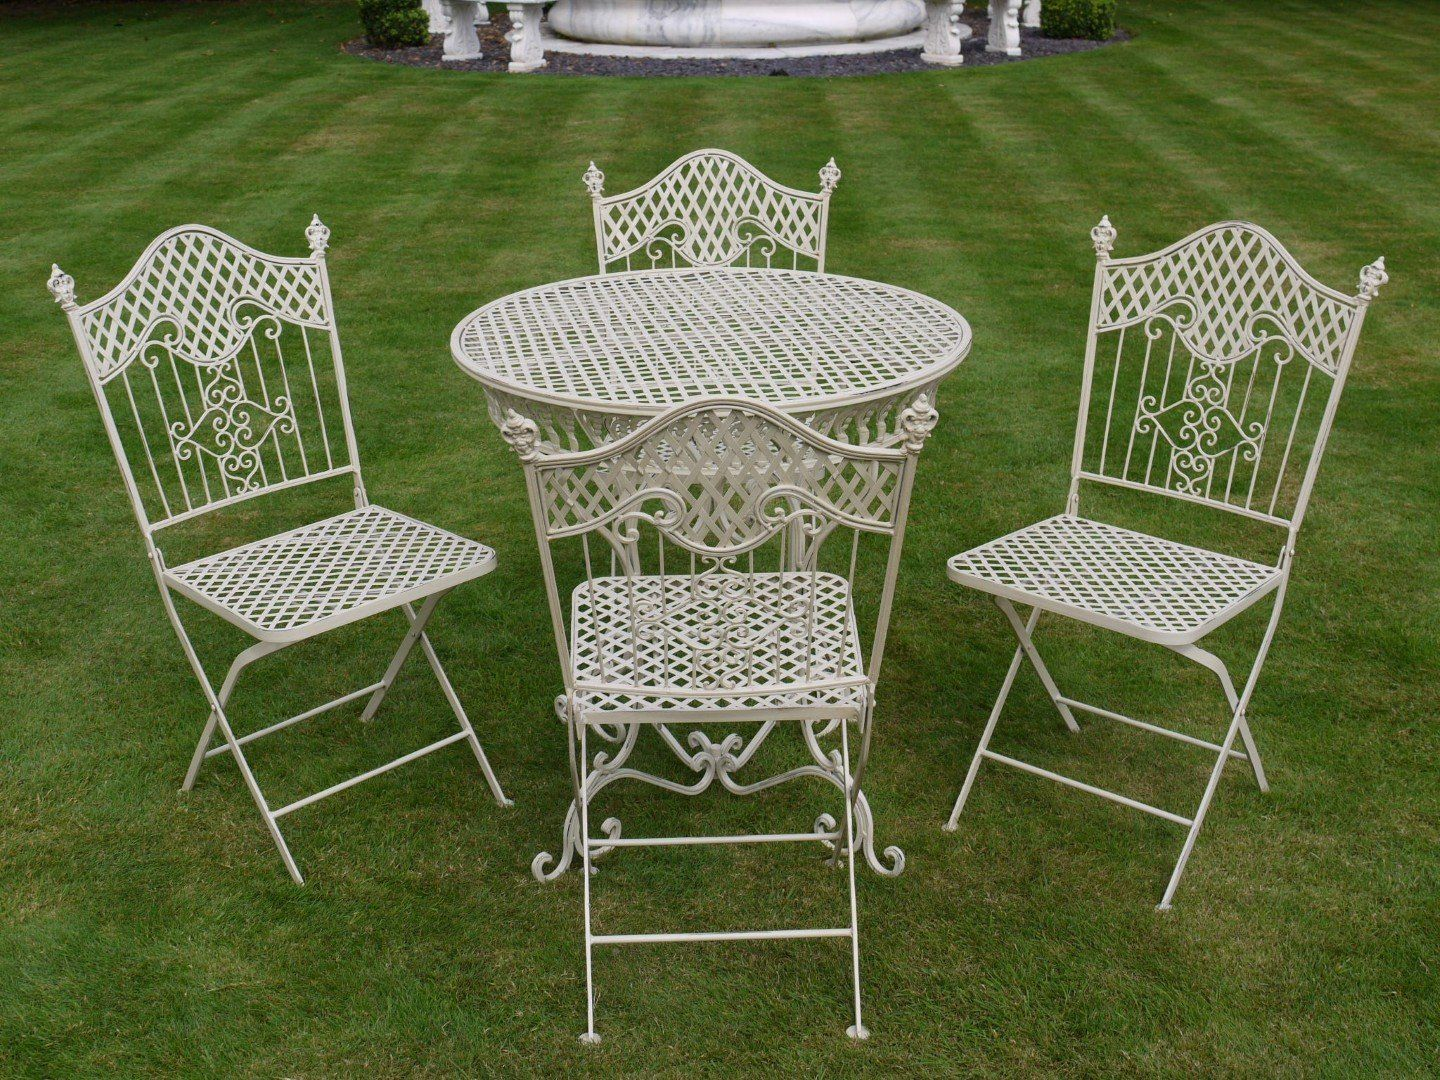 French Ornate Cream Wrought Iron Metal Garden Table And Chairs Bistro Furniture Set Outdoor Patio Furniture Sets Metal Garden Furniture Garden Furniture Sets